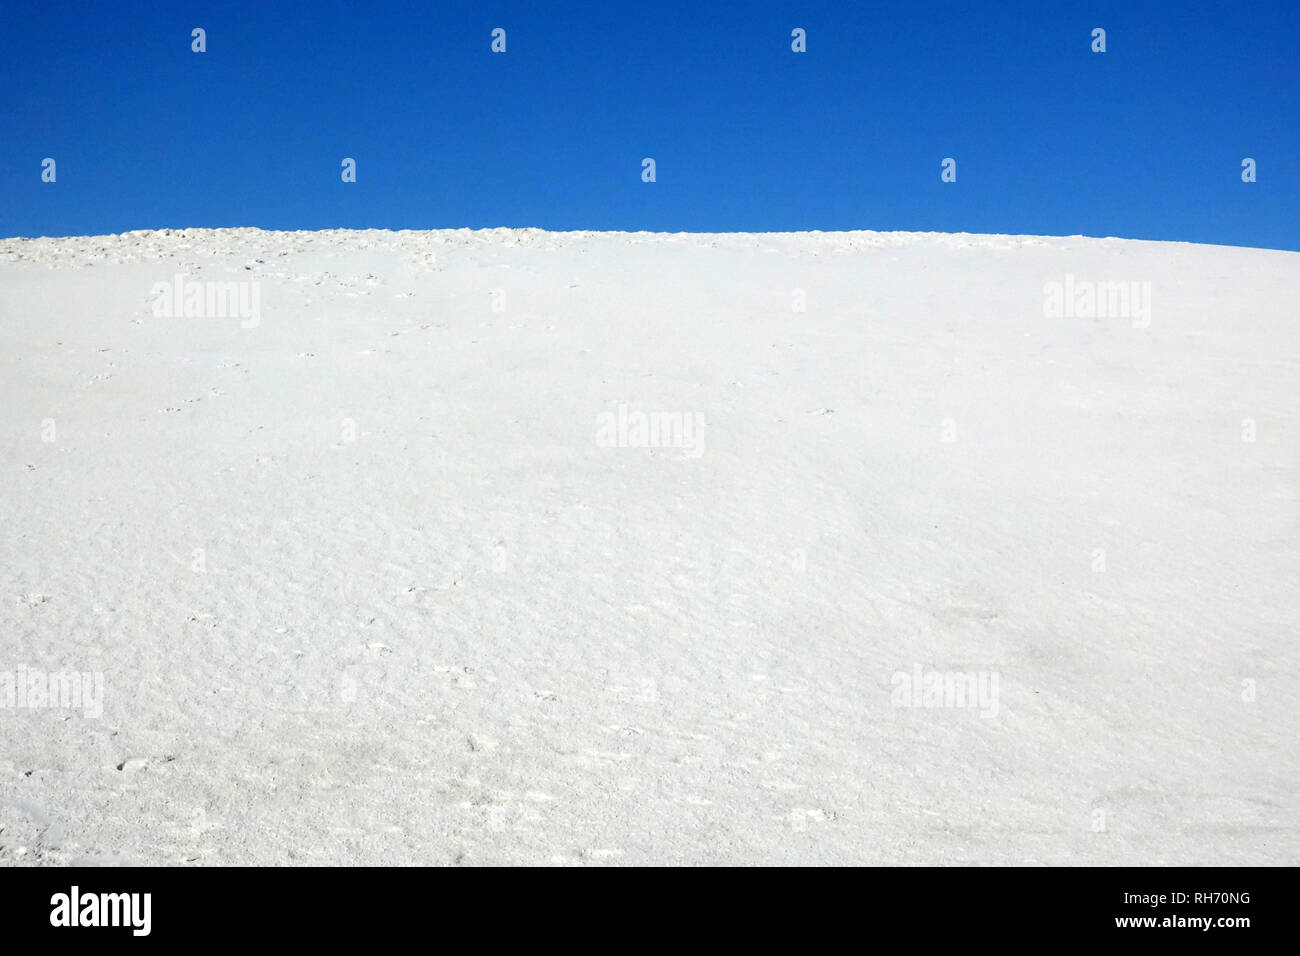 The white sand meets the blue sky in White Sands, New Mexico. - Stock Image